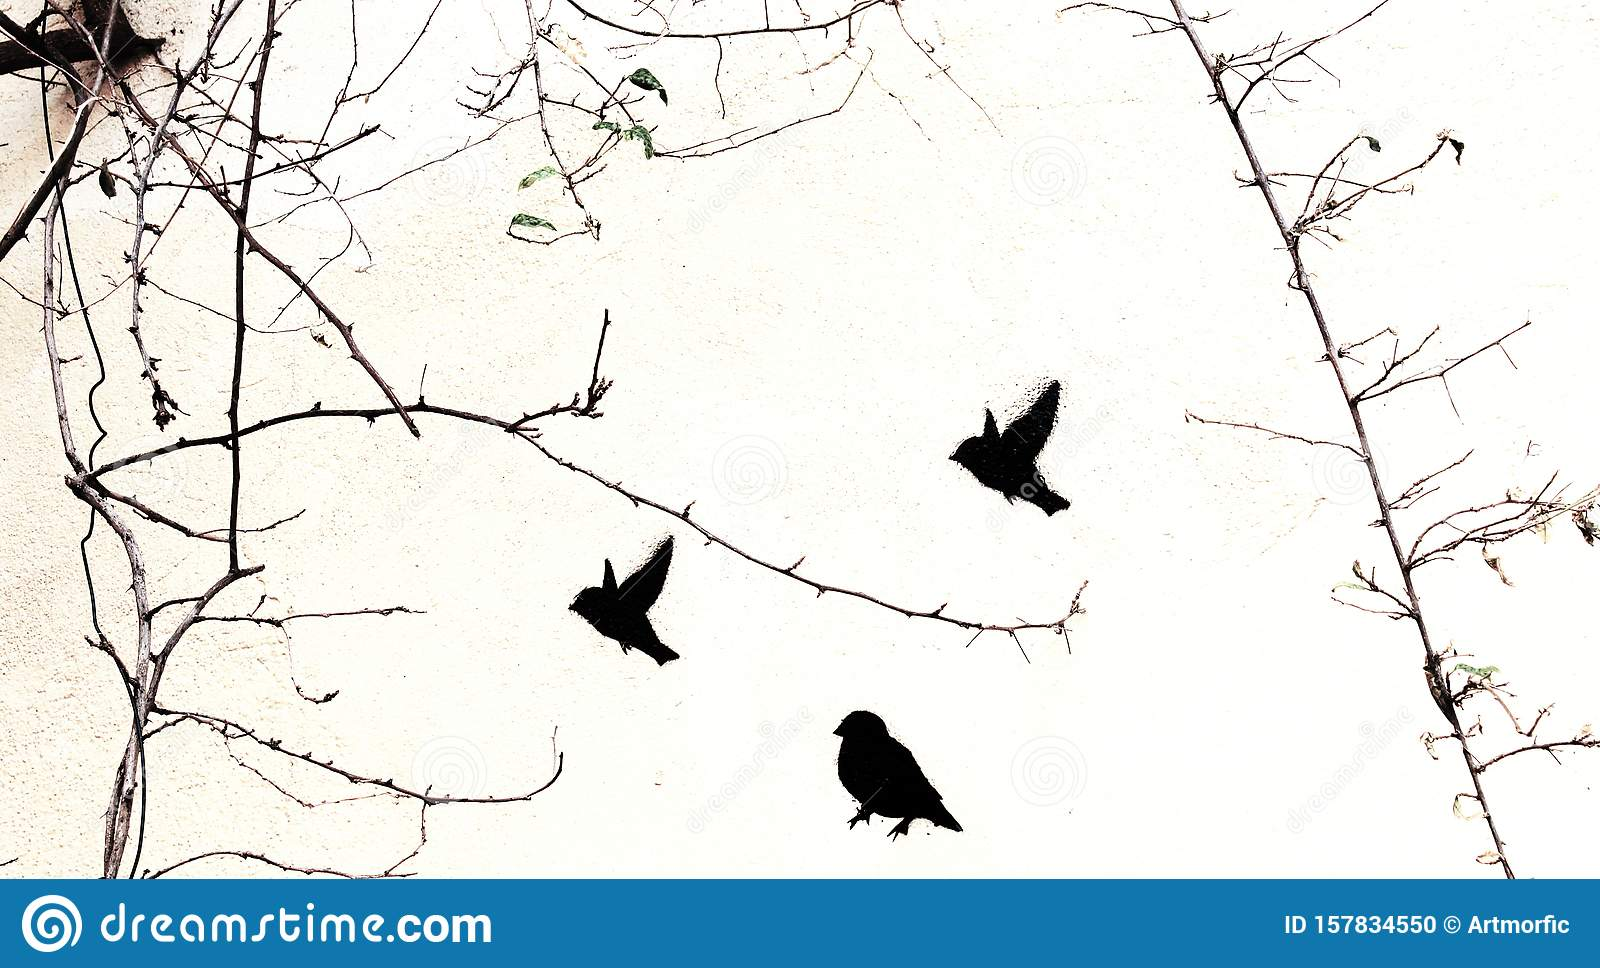 Black Stencil Painted Birds Street Art On White Wall With Real Natural Tree Branches With No Leaves Stock Photo Image Of Beauty Shape 157834550